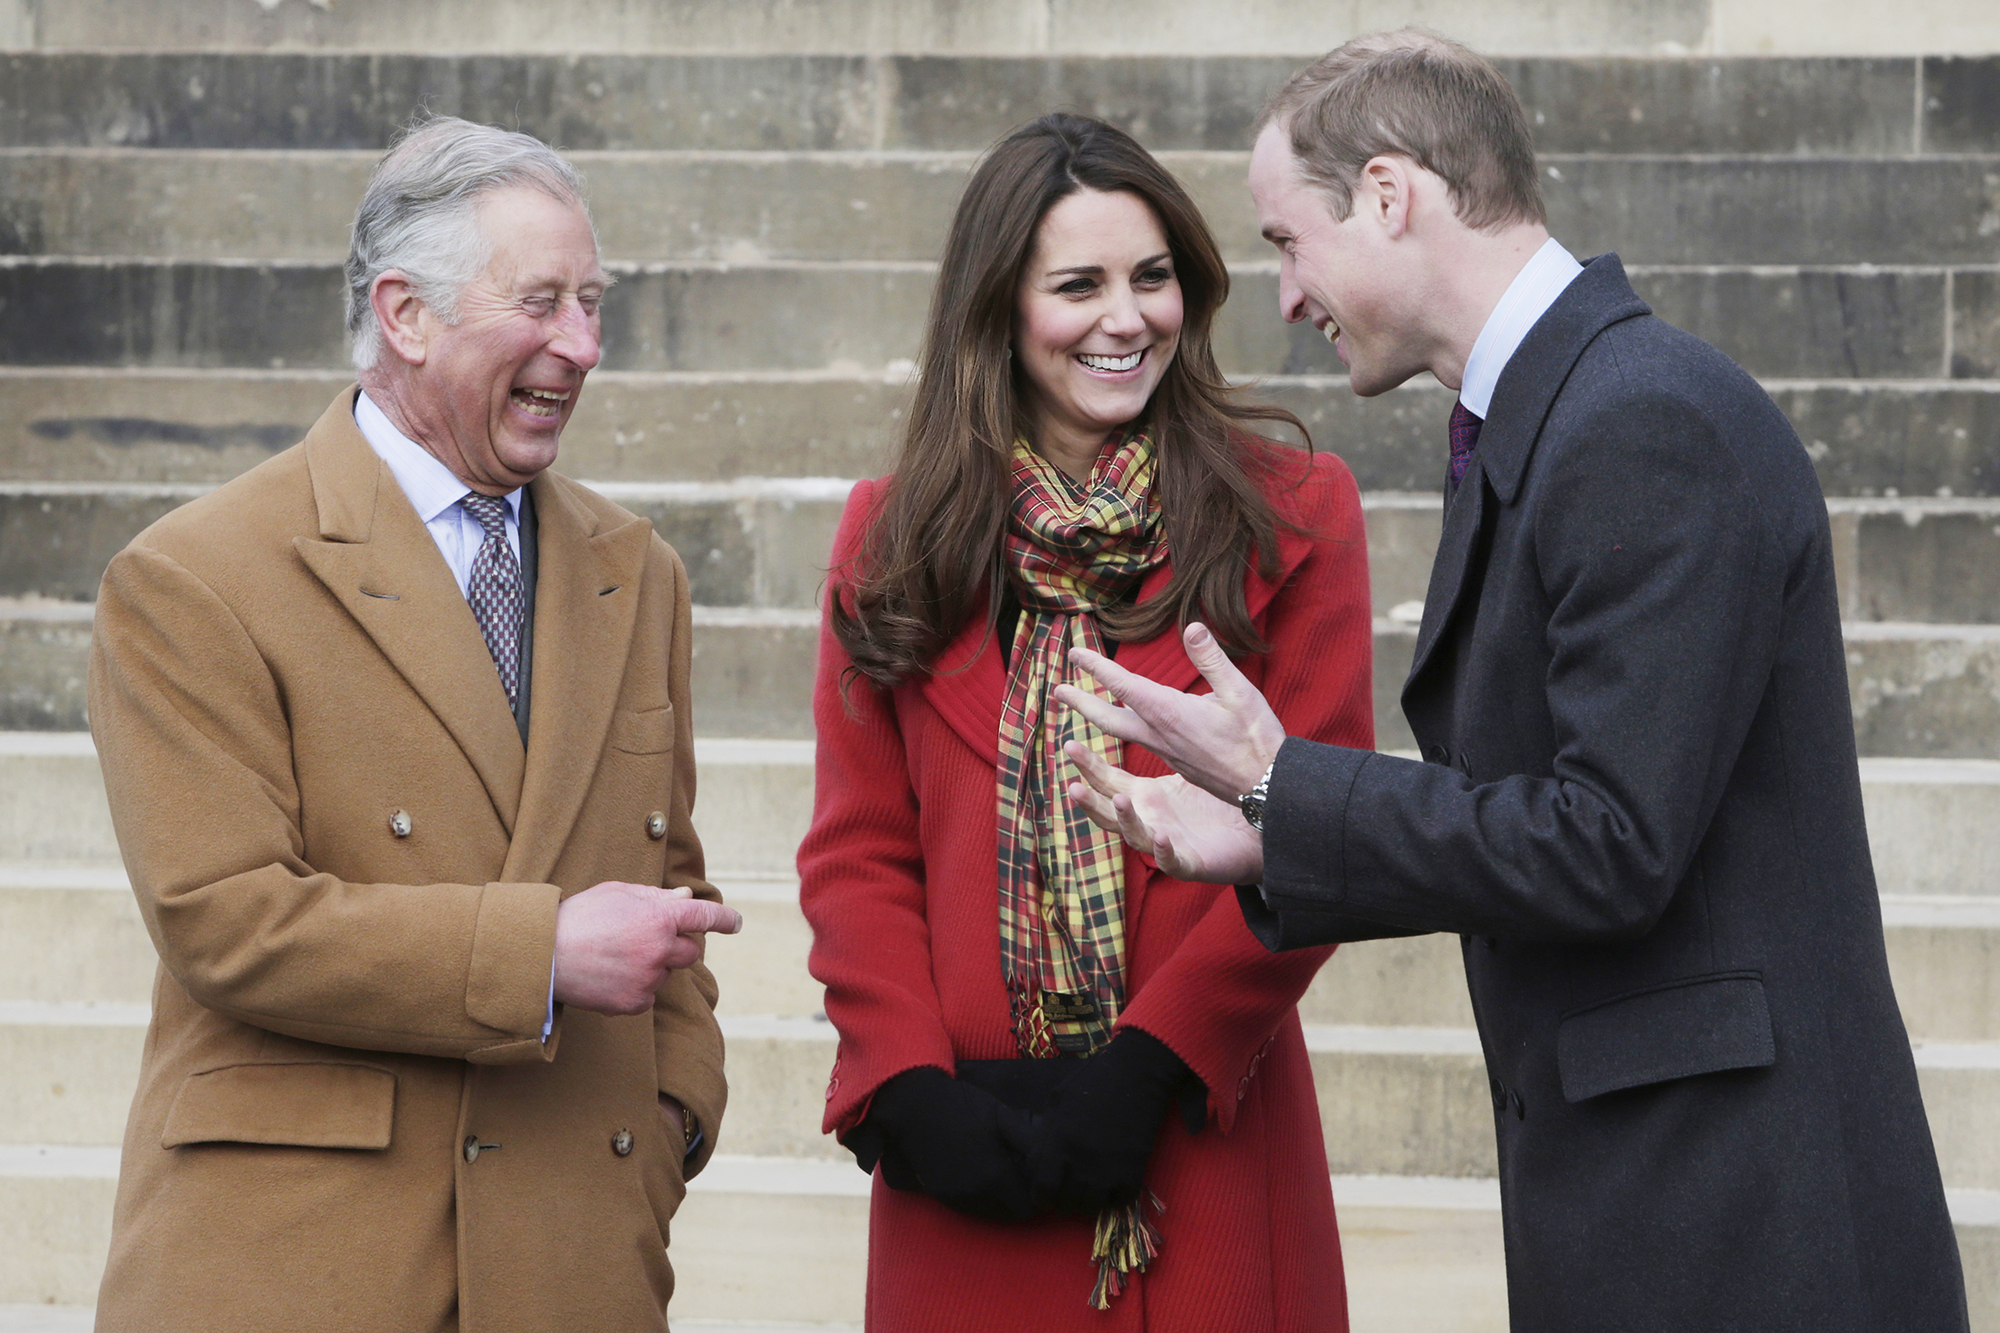 Prince Charles, Prince of Wales, known as the Duke of Rothesay, Catherine, Duchess of Cambridge, known as the Countess of Strathearn, and Prince William, Duke of Cambridge, known as the Earl of Strathearn, when in Scotland during a visit to Dumfries House on March 05, 2013 in Ayrshire